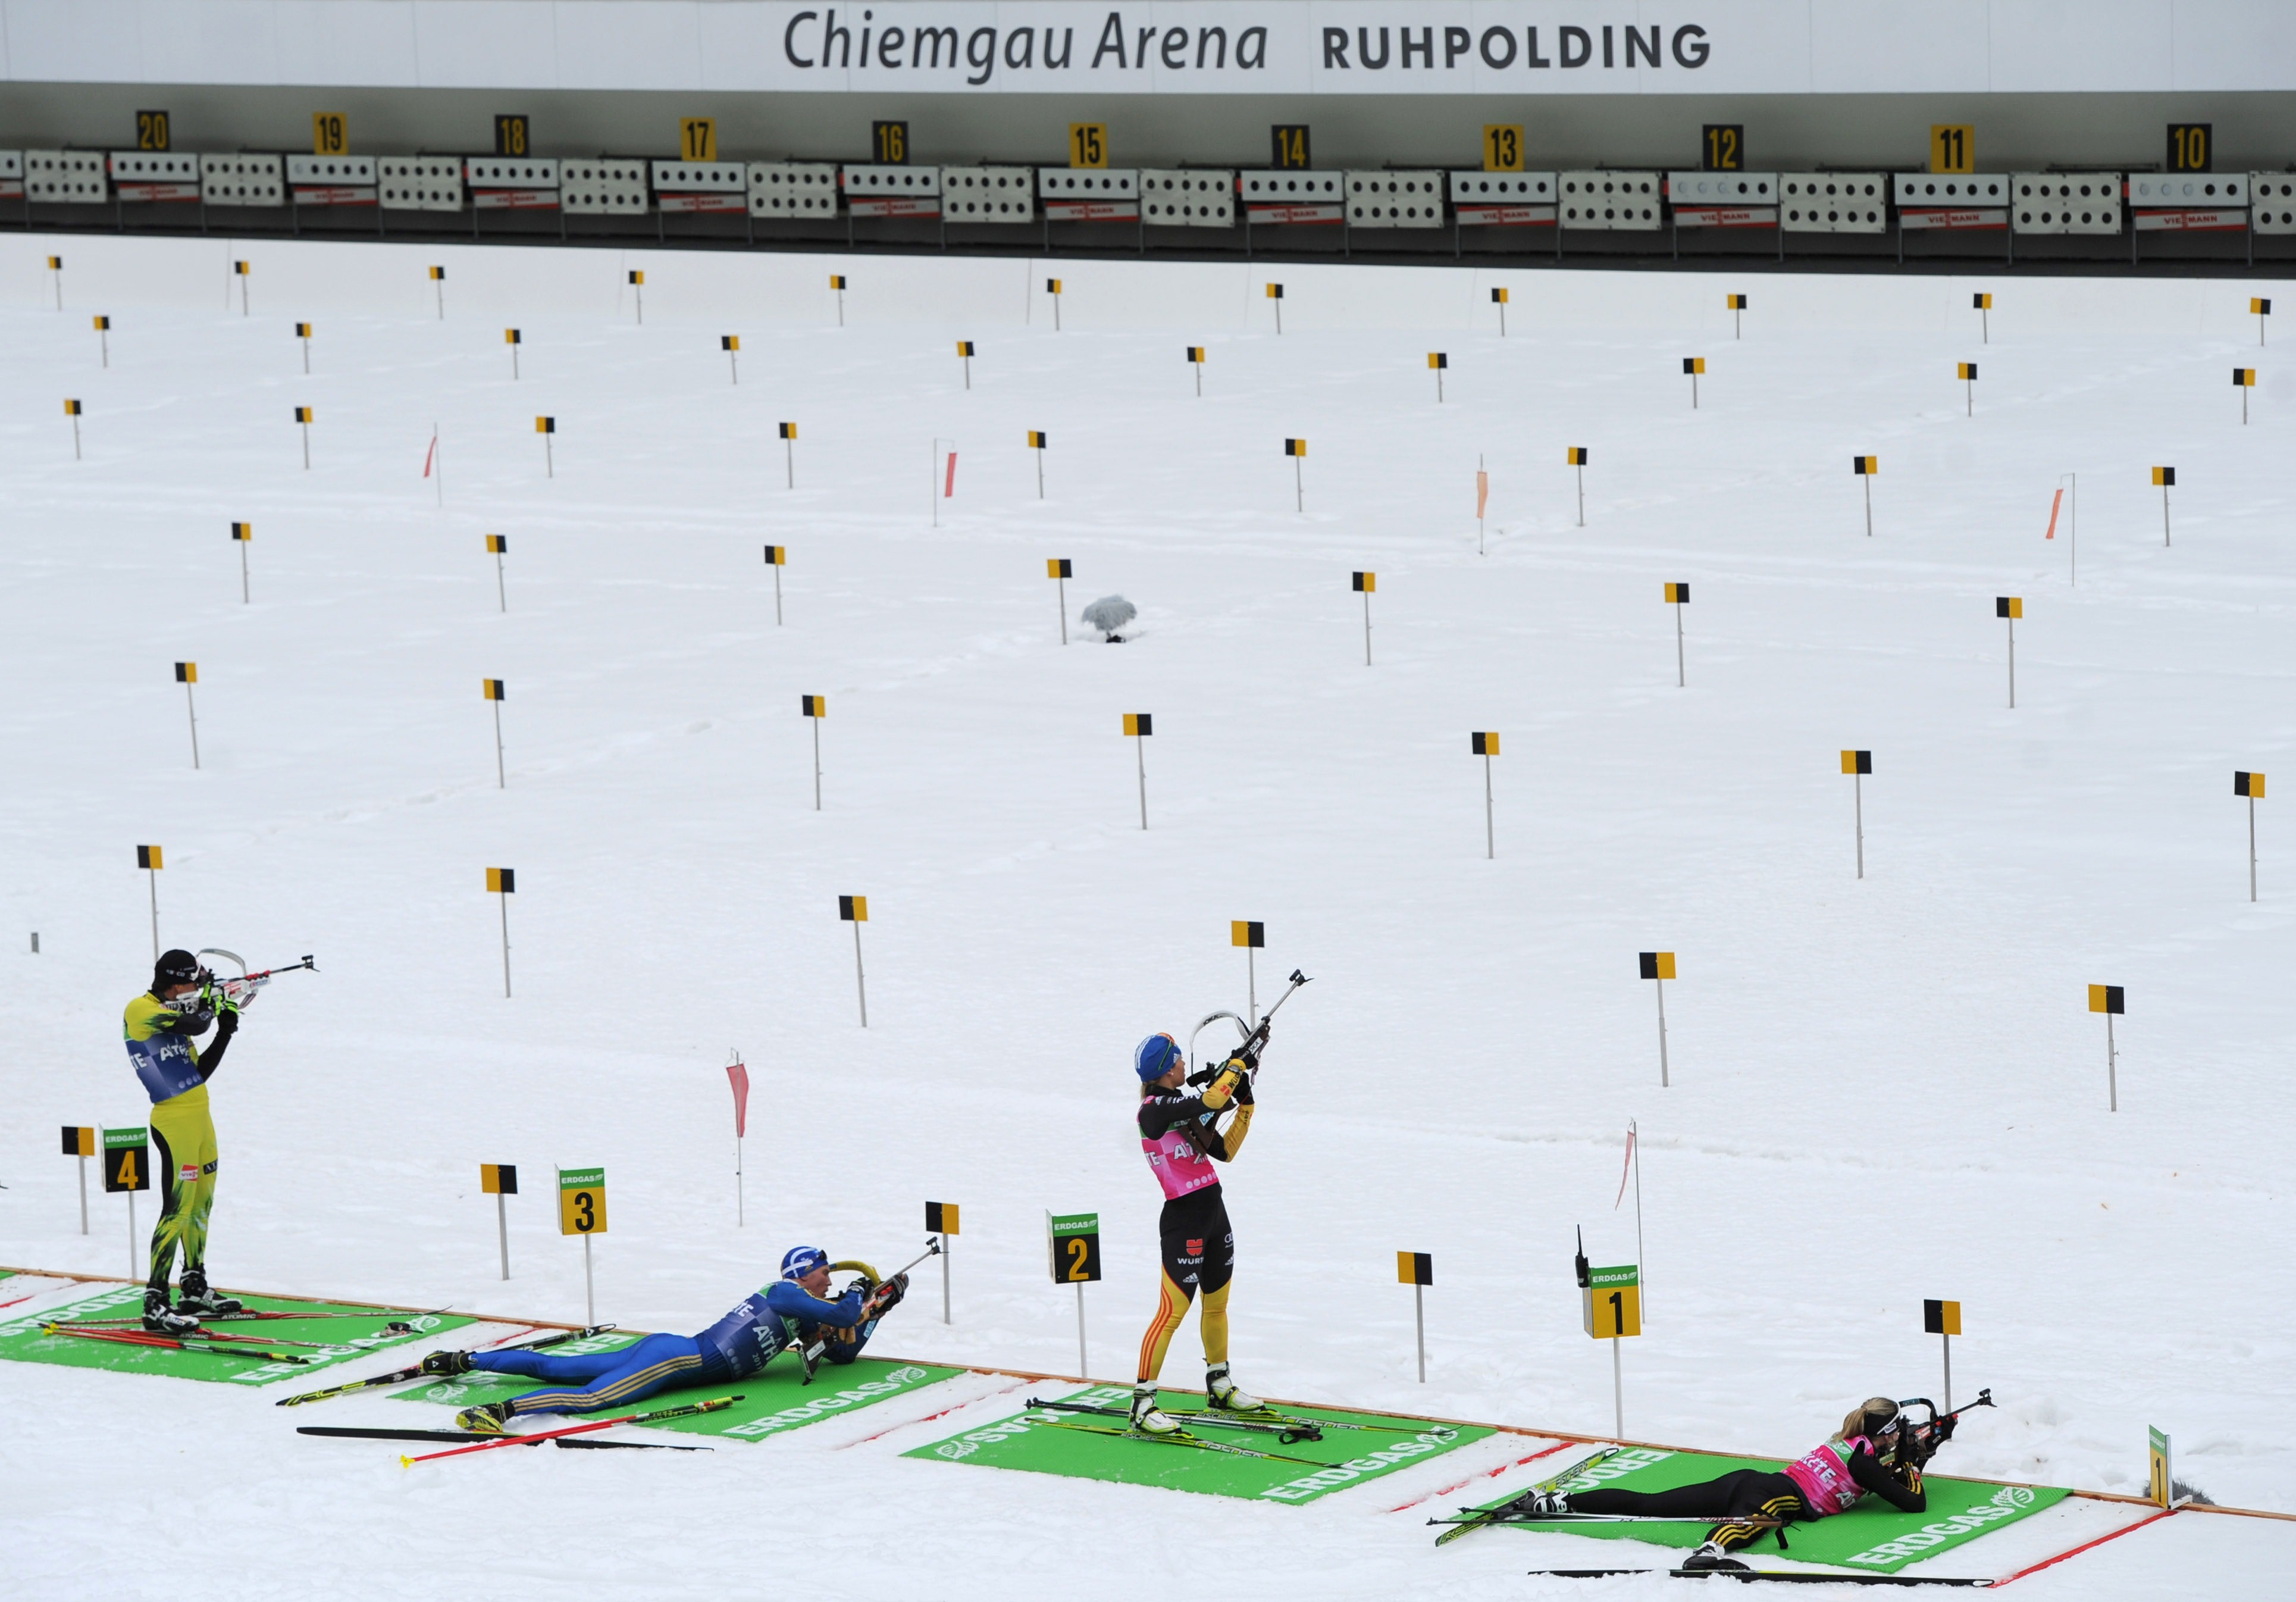 Biathletes shoot during the official training session before the start of the Biathlon World Championships on February 29, 2012 in Ruhpolding